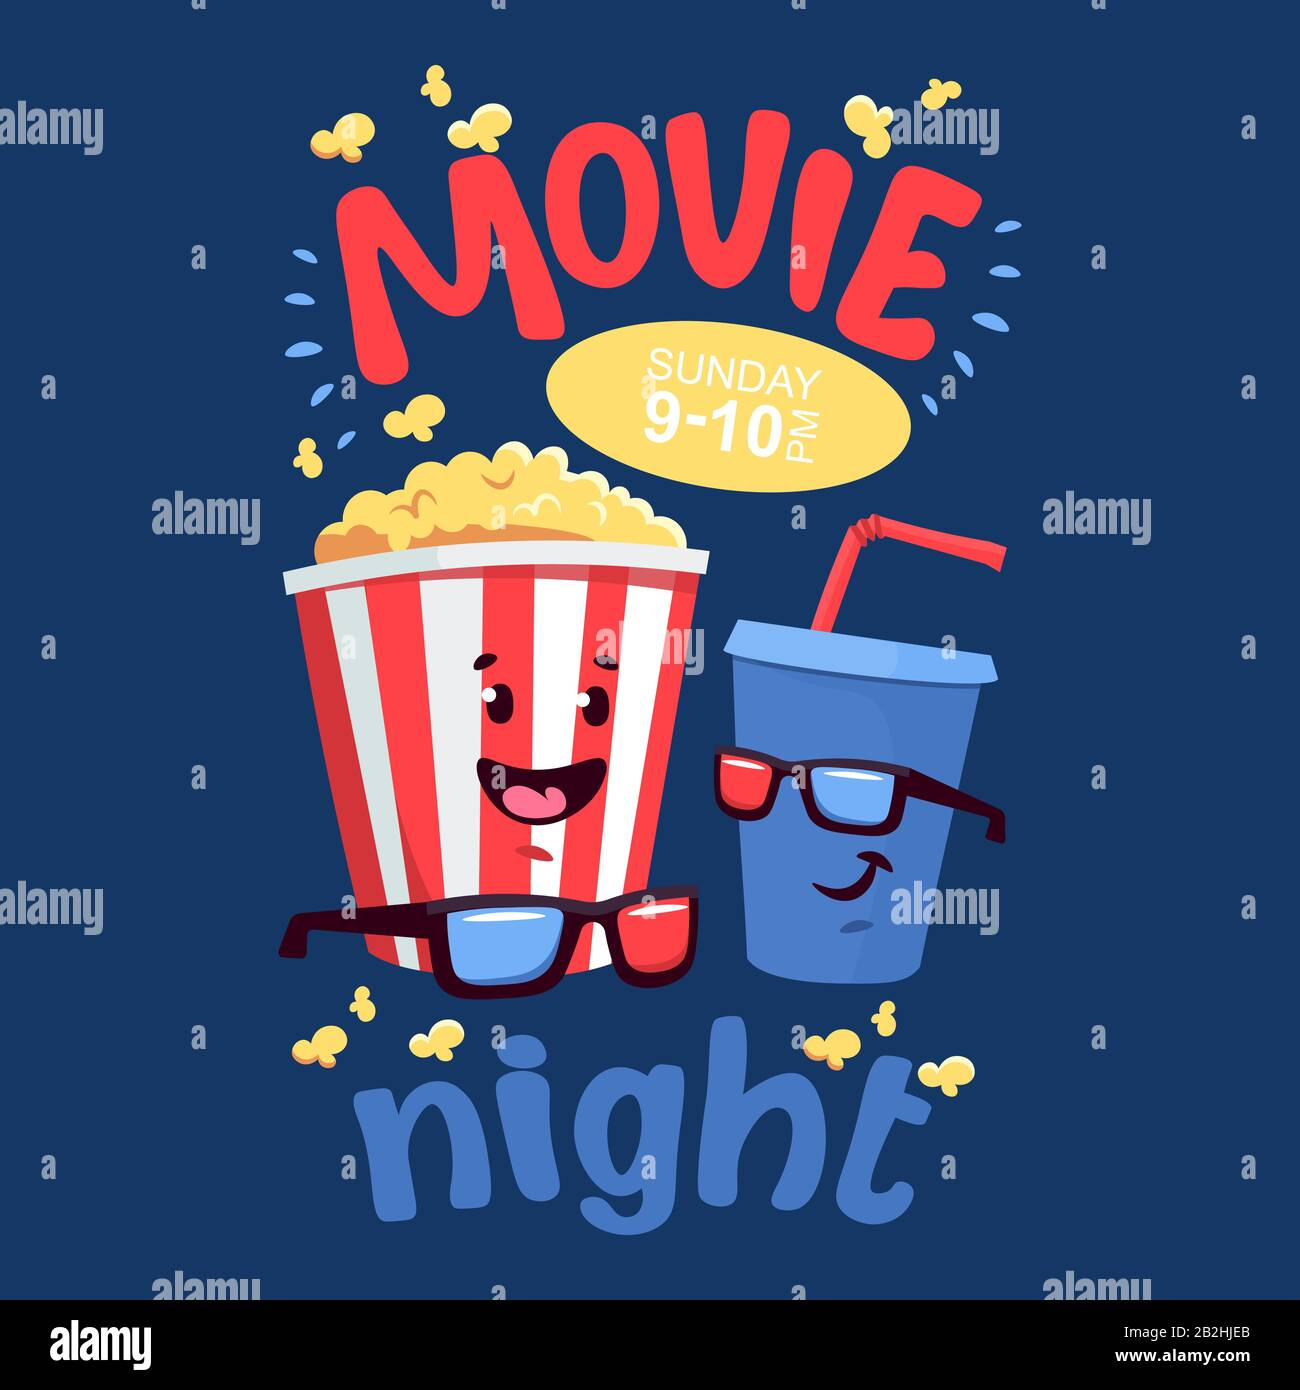 Flat Illustration With Cartoon Movie Popcorn And Soda Stock Vector Image Art Alamy